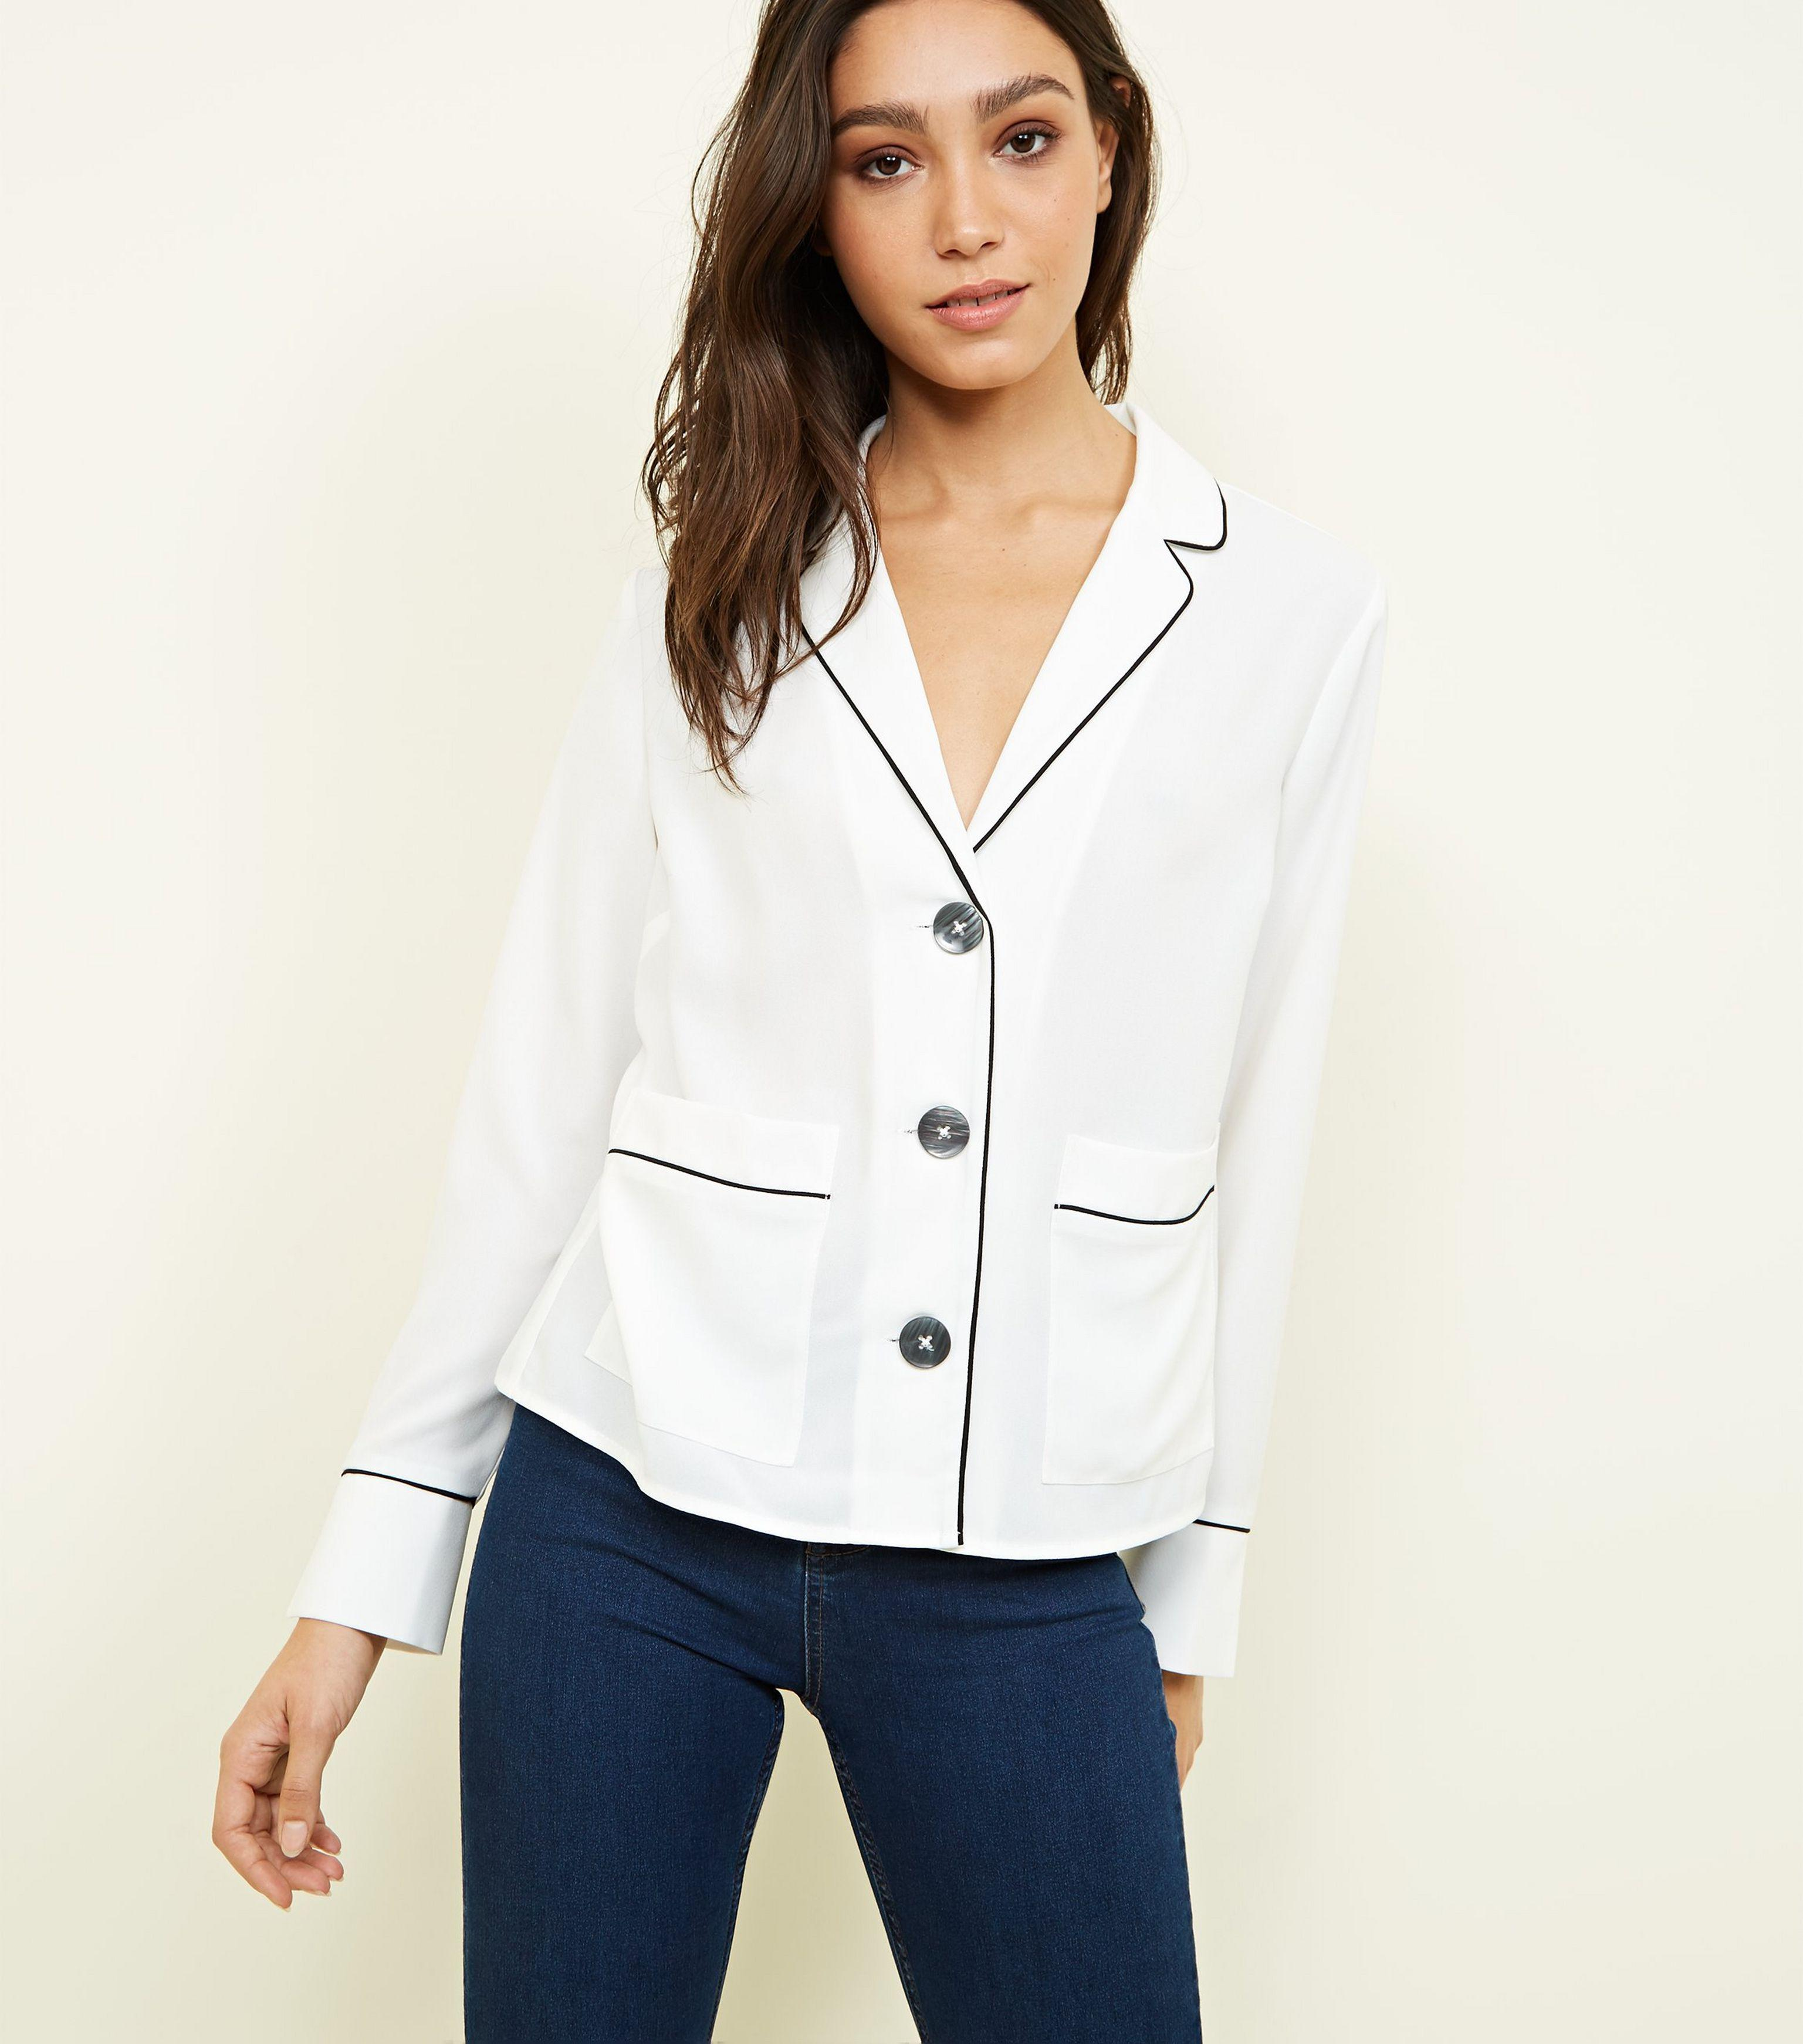 39fc1e309ab795 New Look Off White Piped Edge Pyjama-style Shirt in White - Lyst